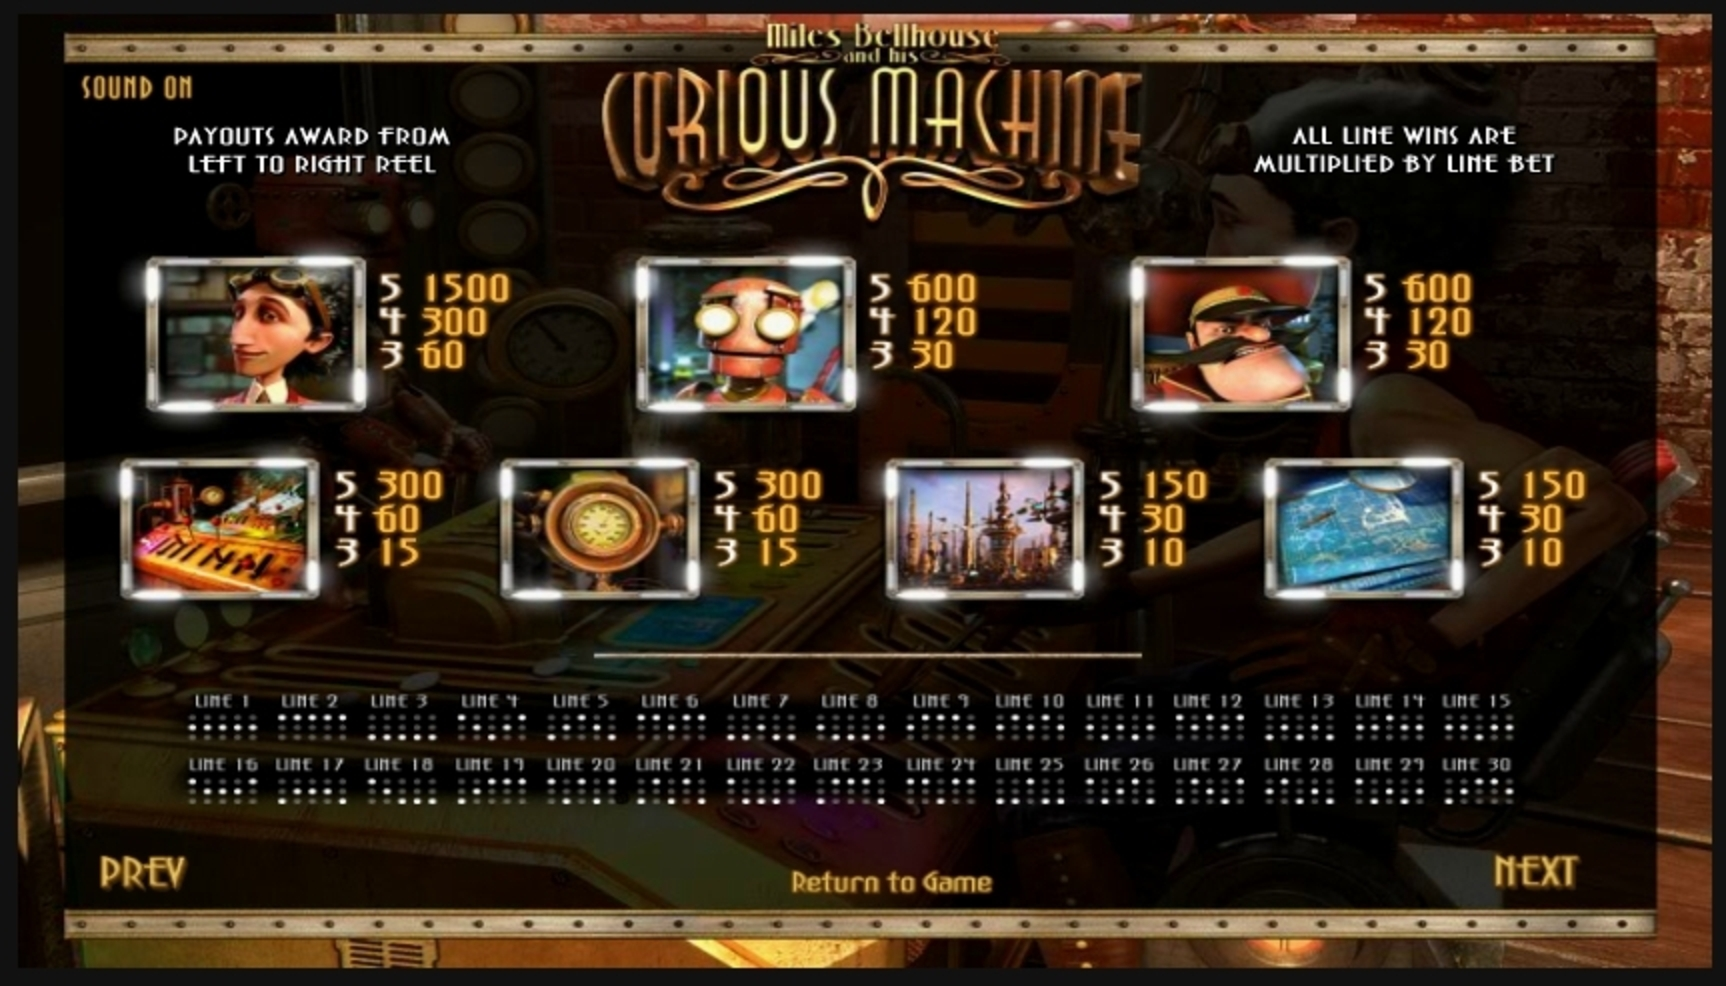 Info of The Curious Machine Slot Game by Betsoft